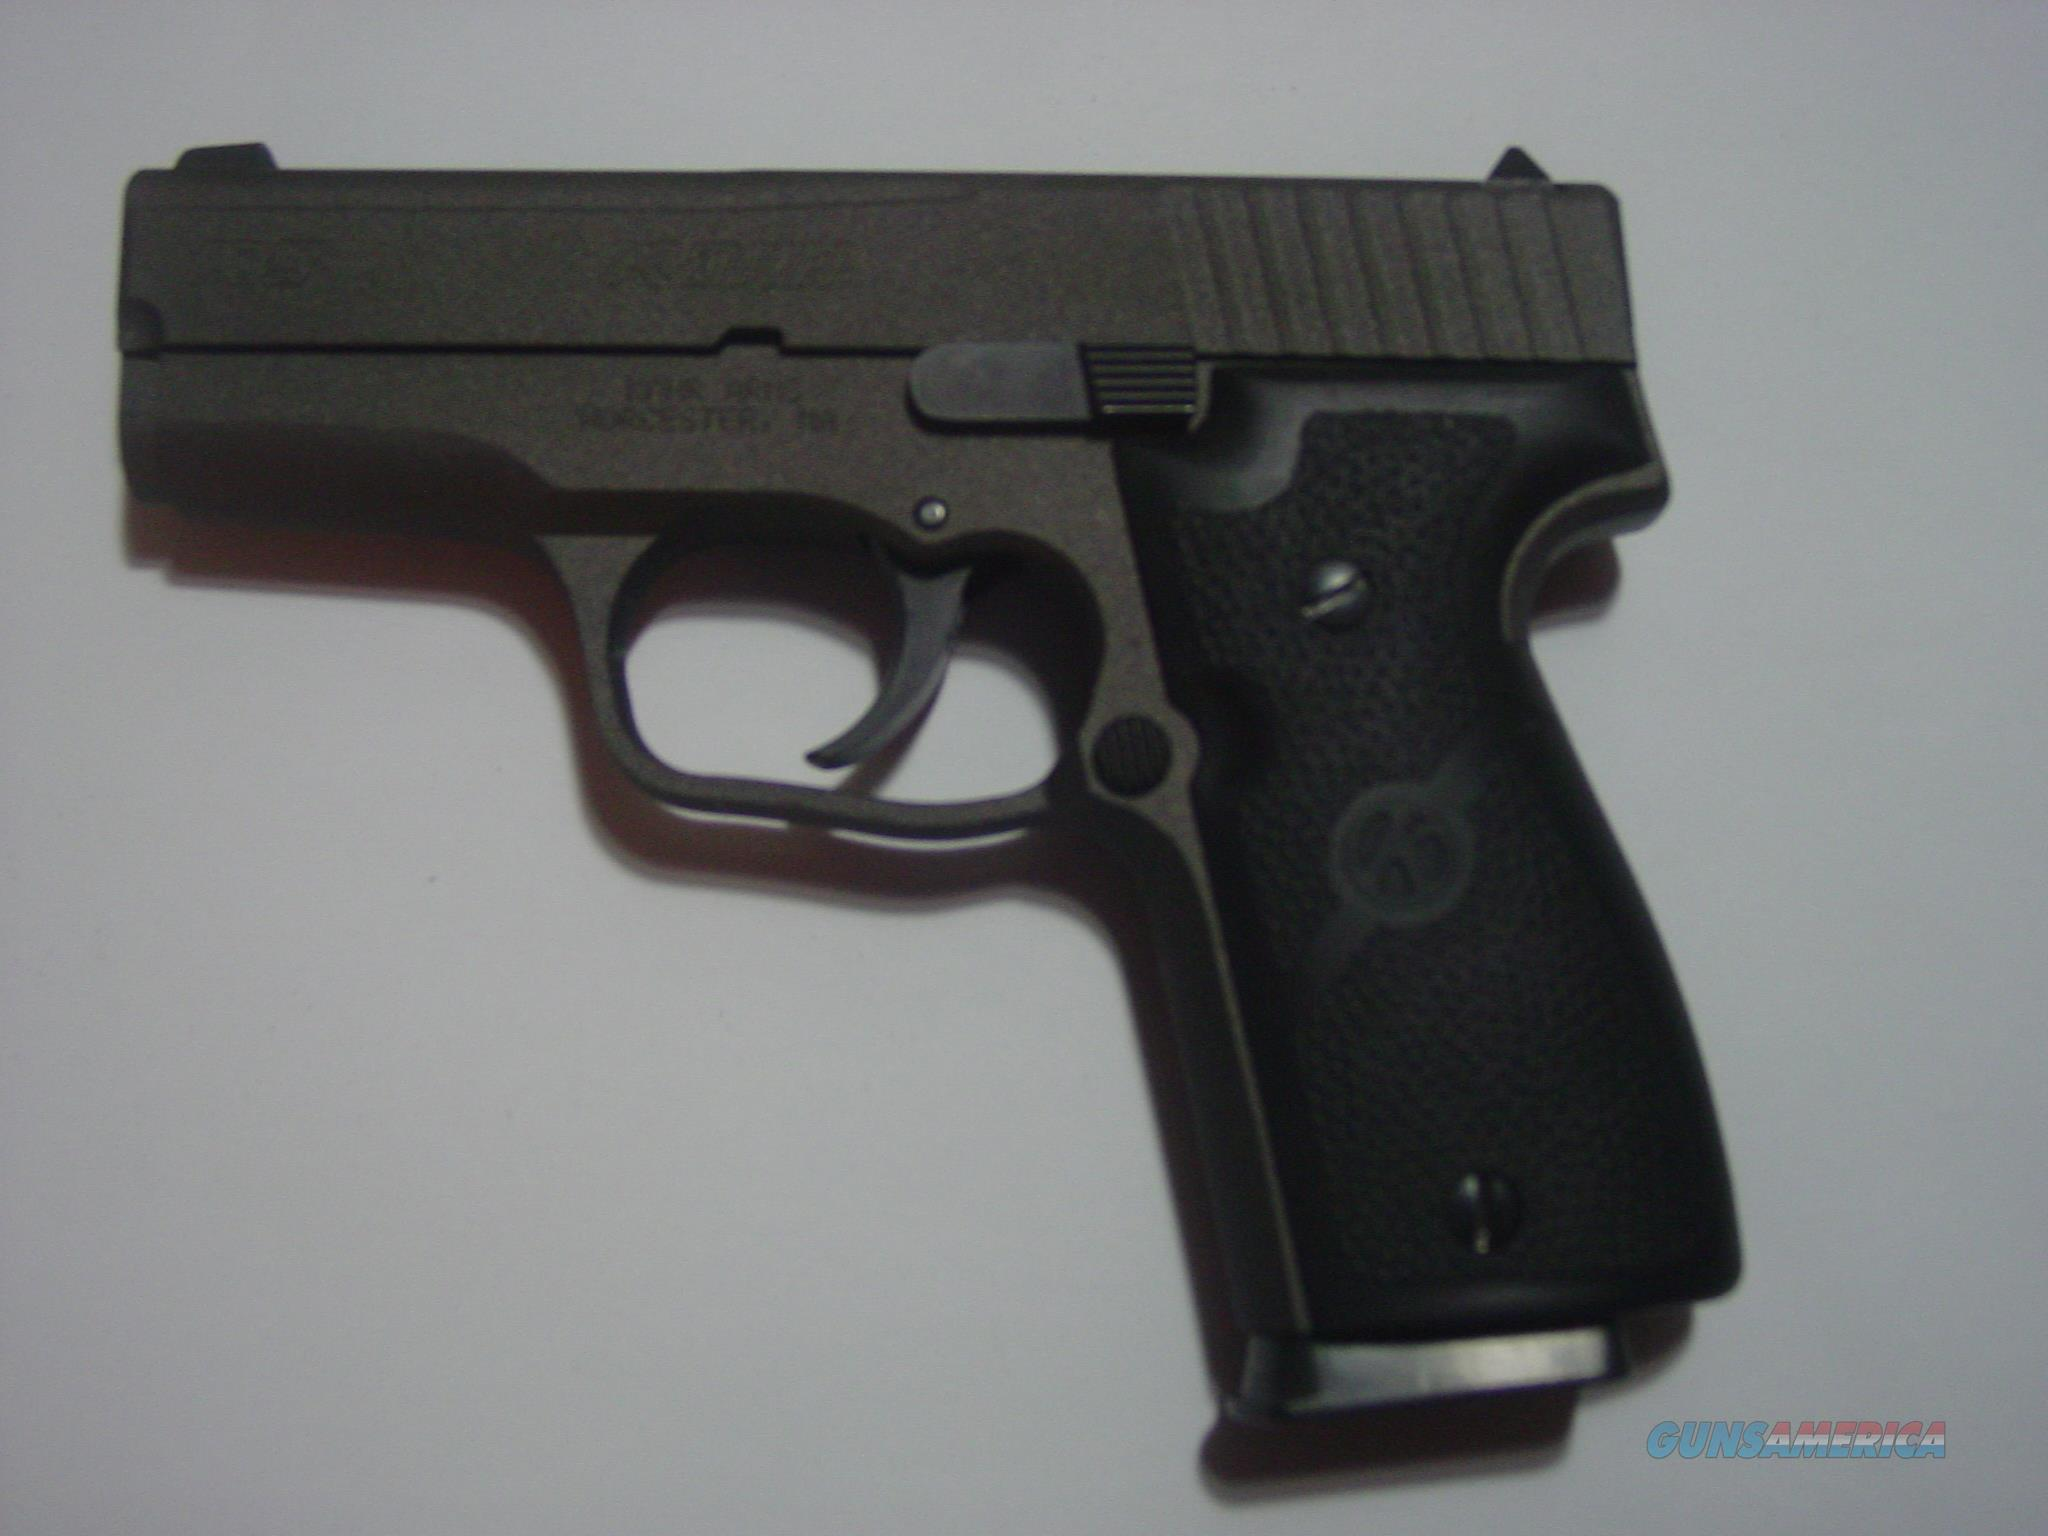 KAHR 9MM EARLY ALL STEEL MODEL.............AS NEW.............GREAT FLAT CARRY  Guns > Pistols > Kahr Pistols